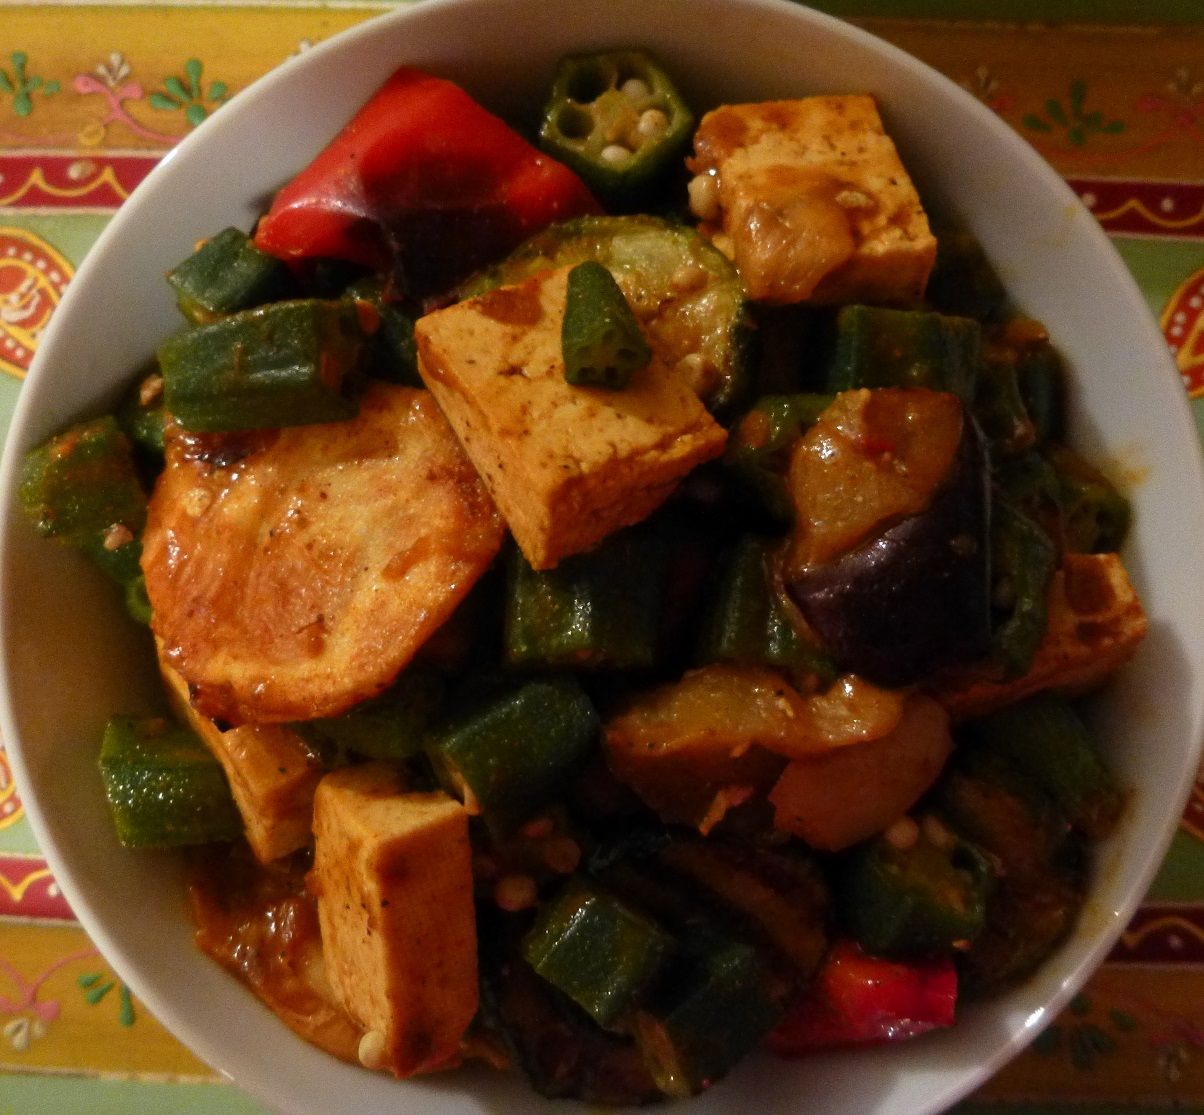 Chinese style curry with tofu okra roasted potatoes eggplant chinese food recipes chinese style curry with tofu okra roasted potatoes eggplant red bell peppers forumfinder Choice Image